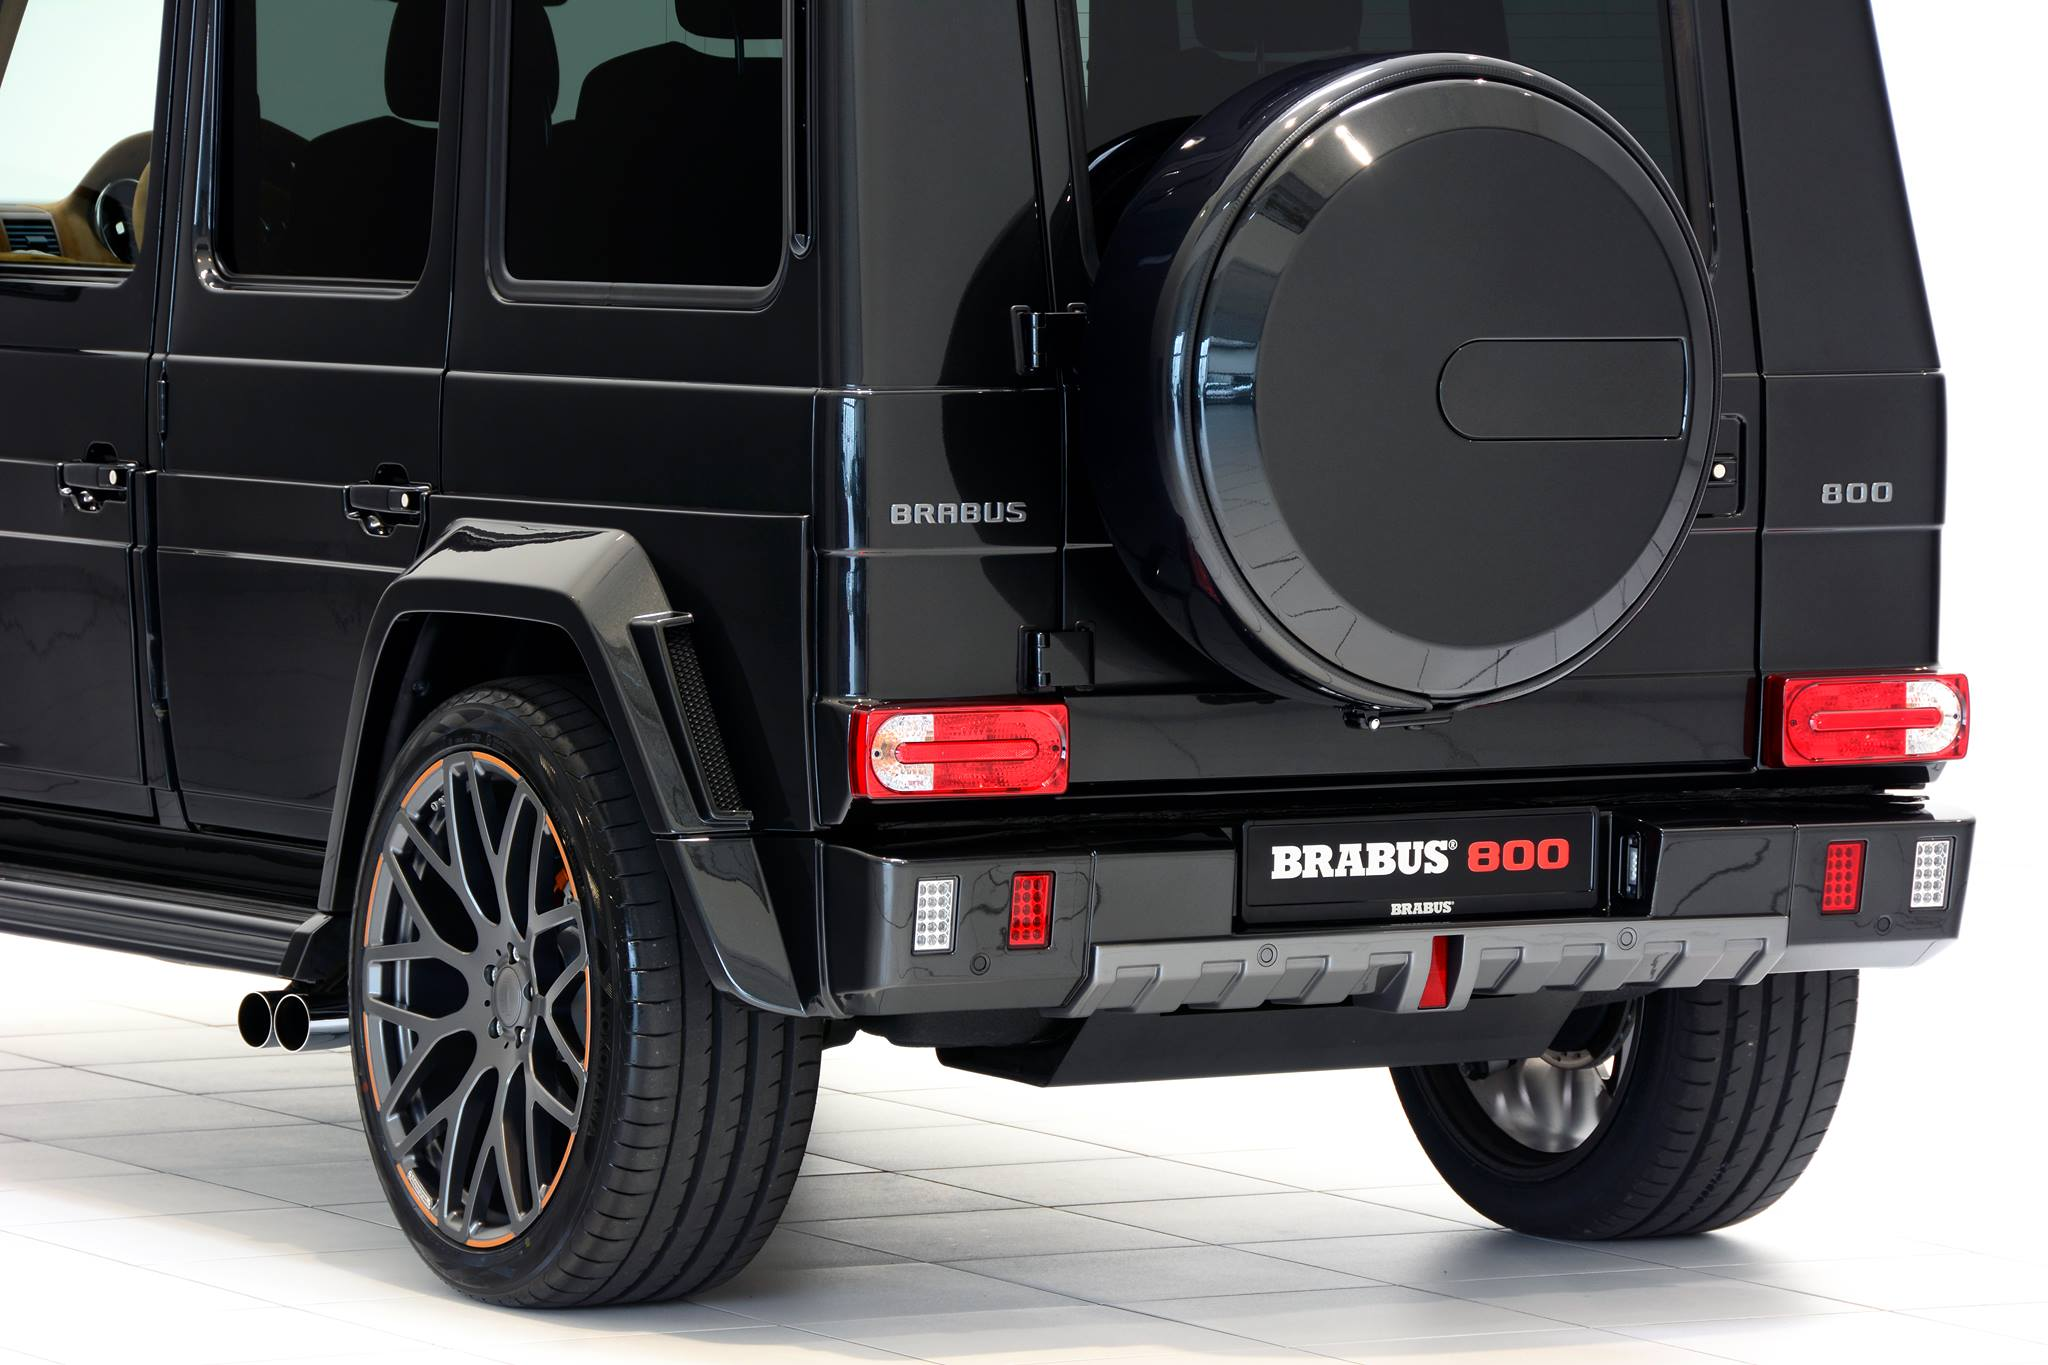 brabus 800 is a mercedes-amg g65 with more oomph | automobile magazine